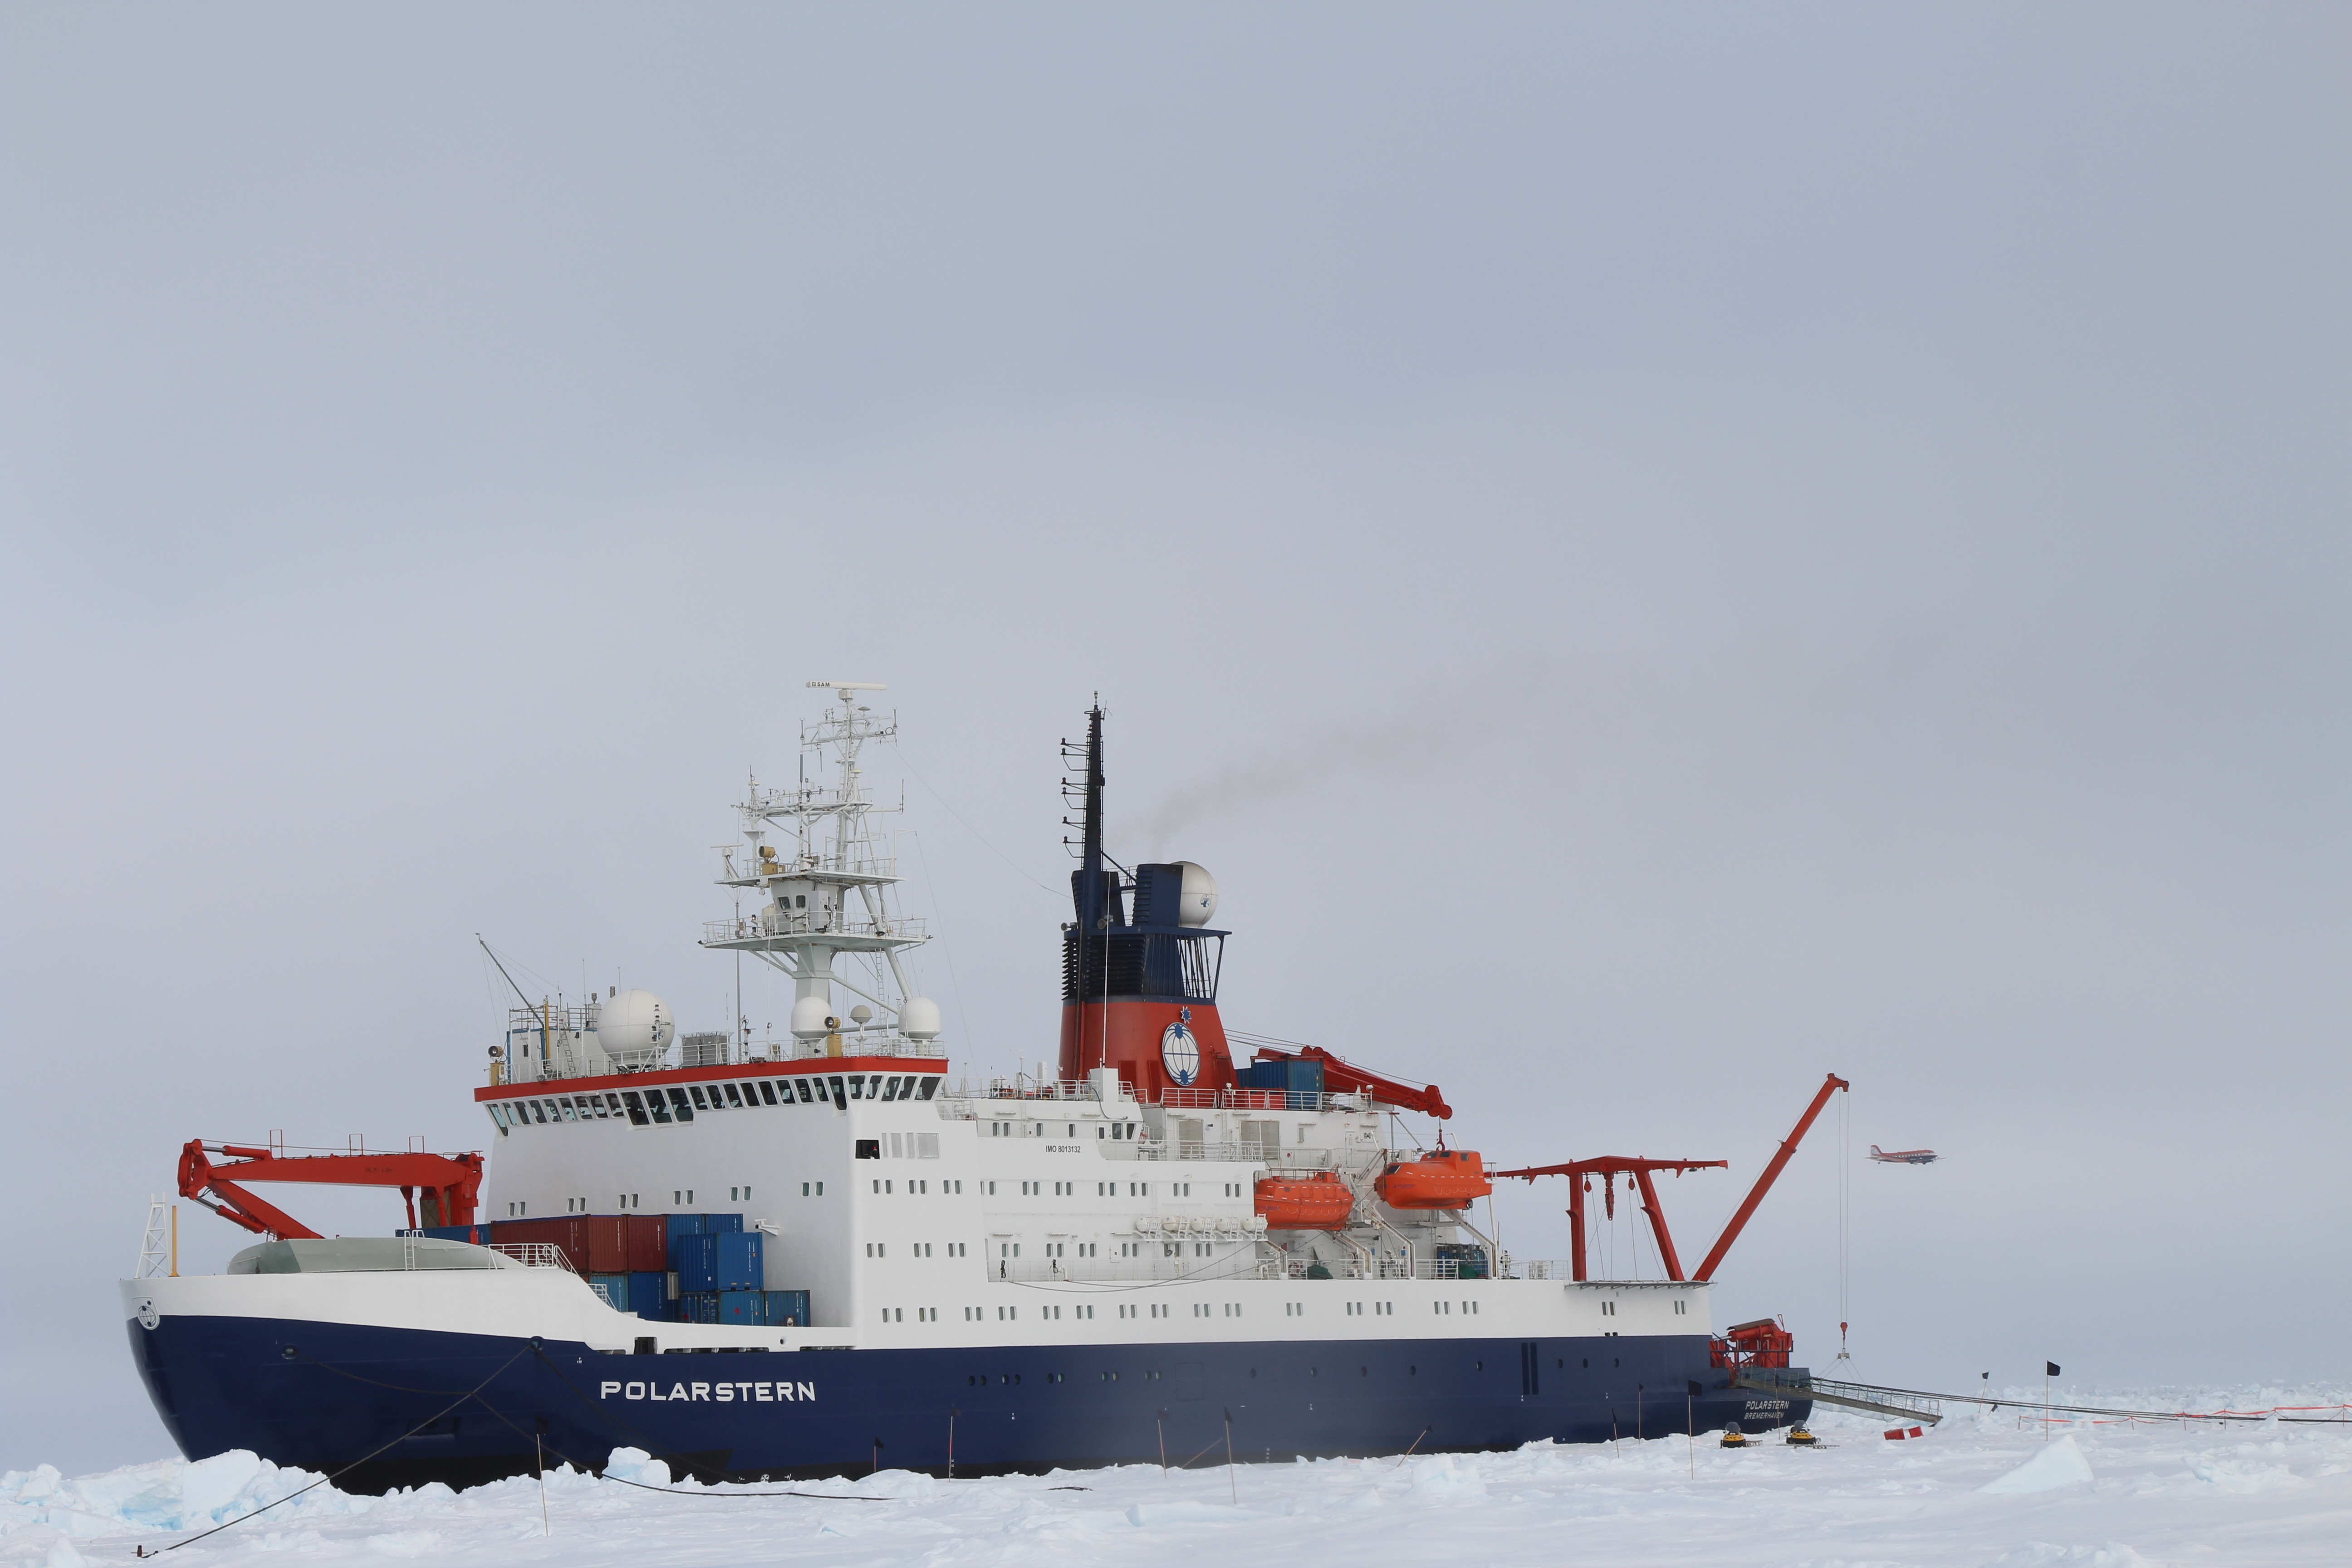 Polar 5 passing by Polarstern during PASCAL and ACLOUD.